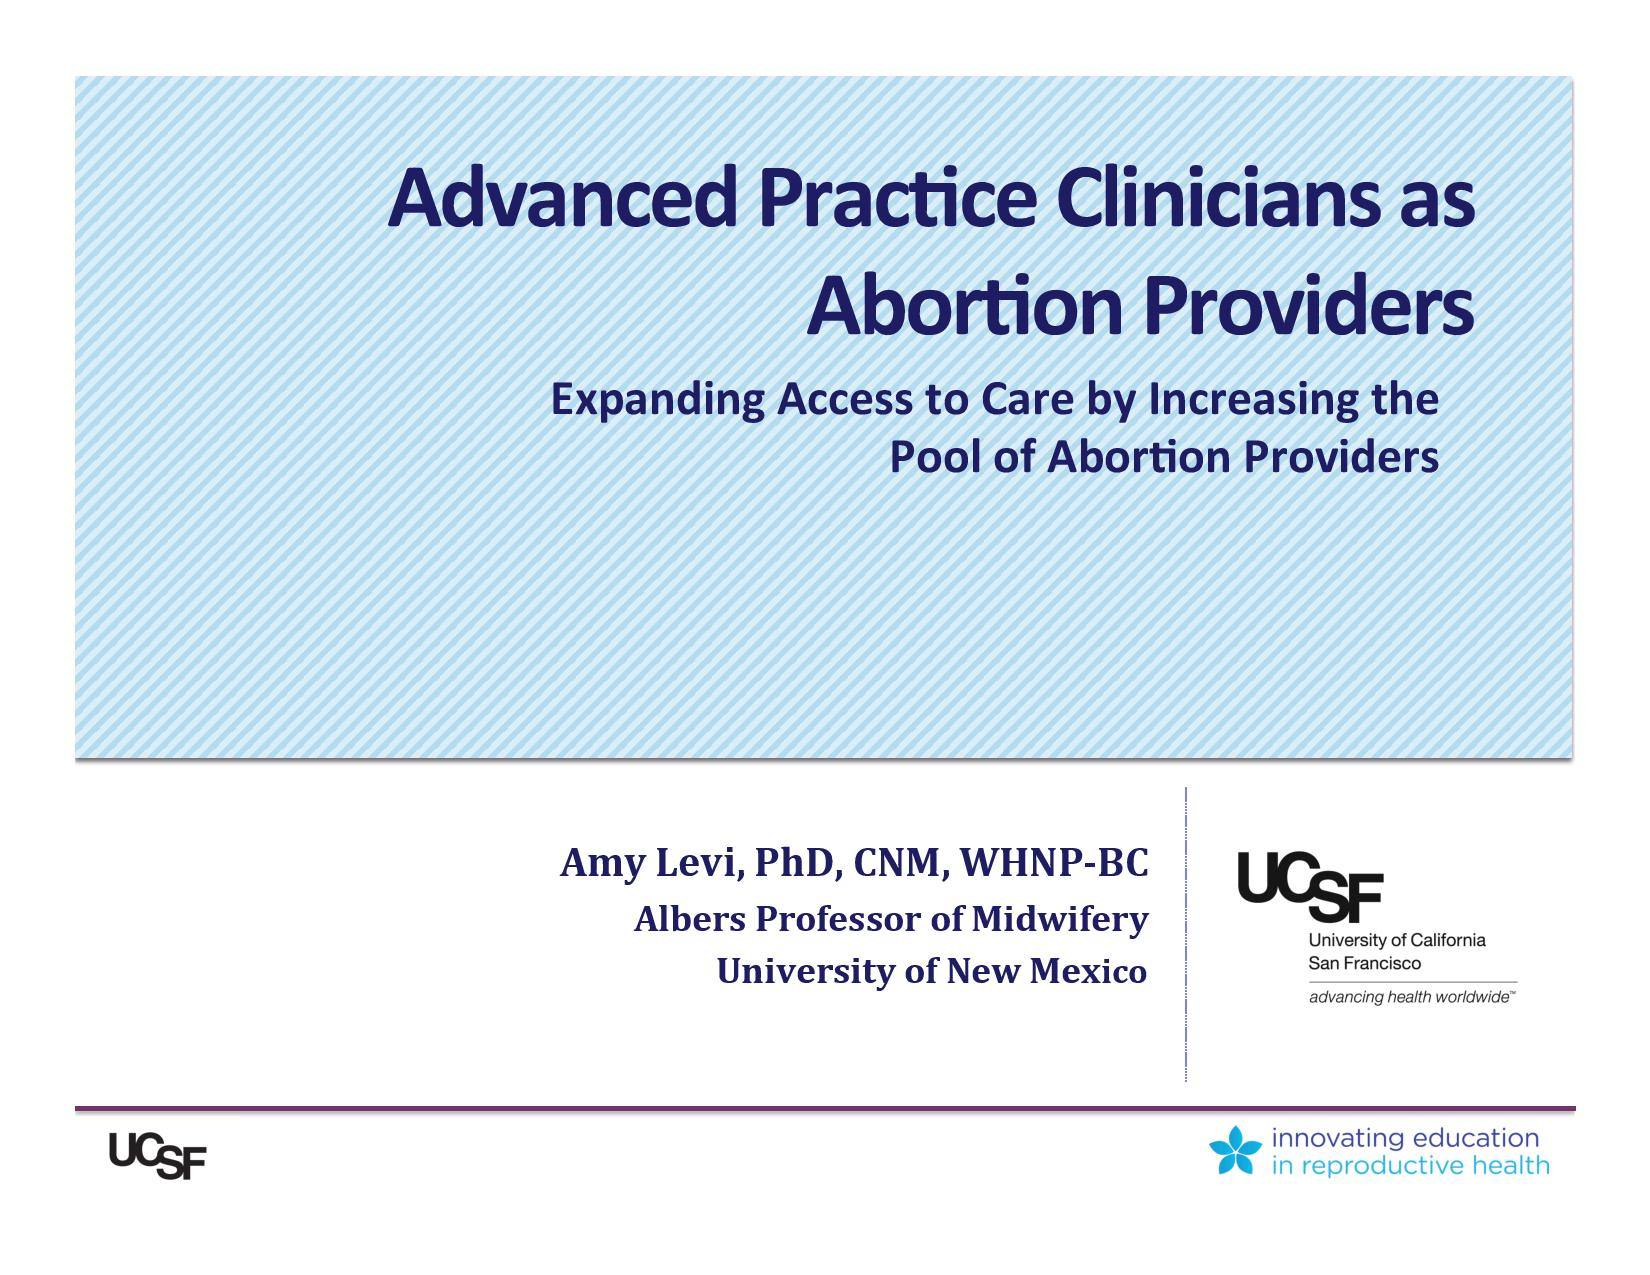 introduction of a research paper about abortion Abortion is a central and contentious matter in the lives of many living in the the united states facing unplanned pregnancies opinions on abortion vary for numerous reasons under certain circumstances, abortion may be the most appropriate or suitable action to take young women who find.